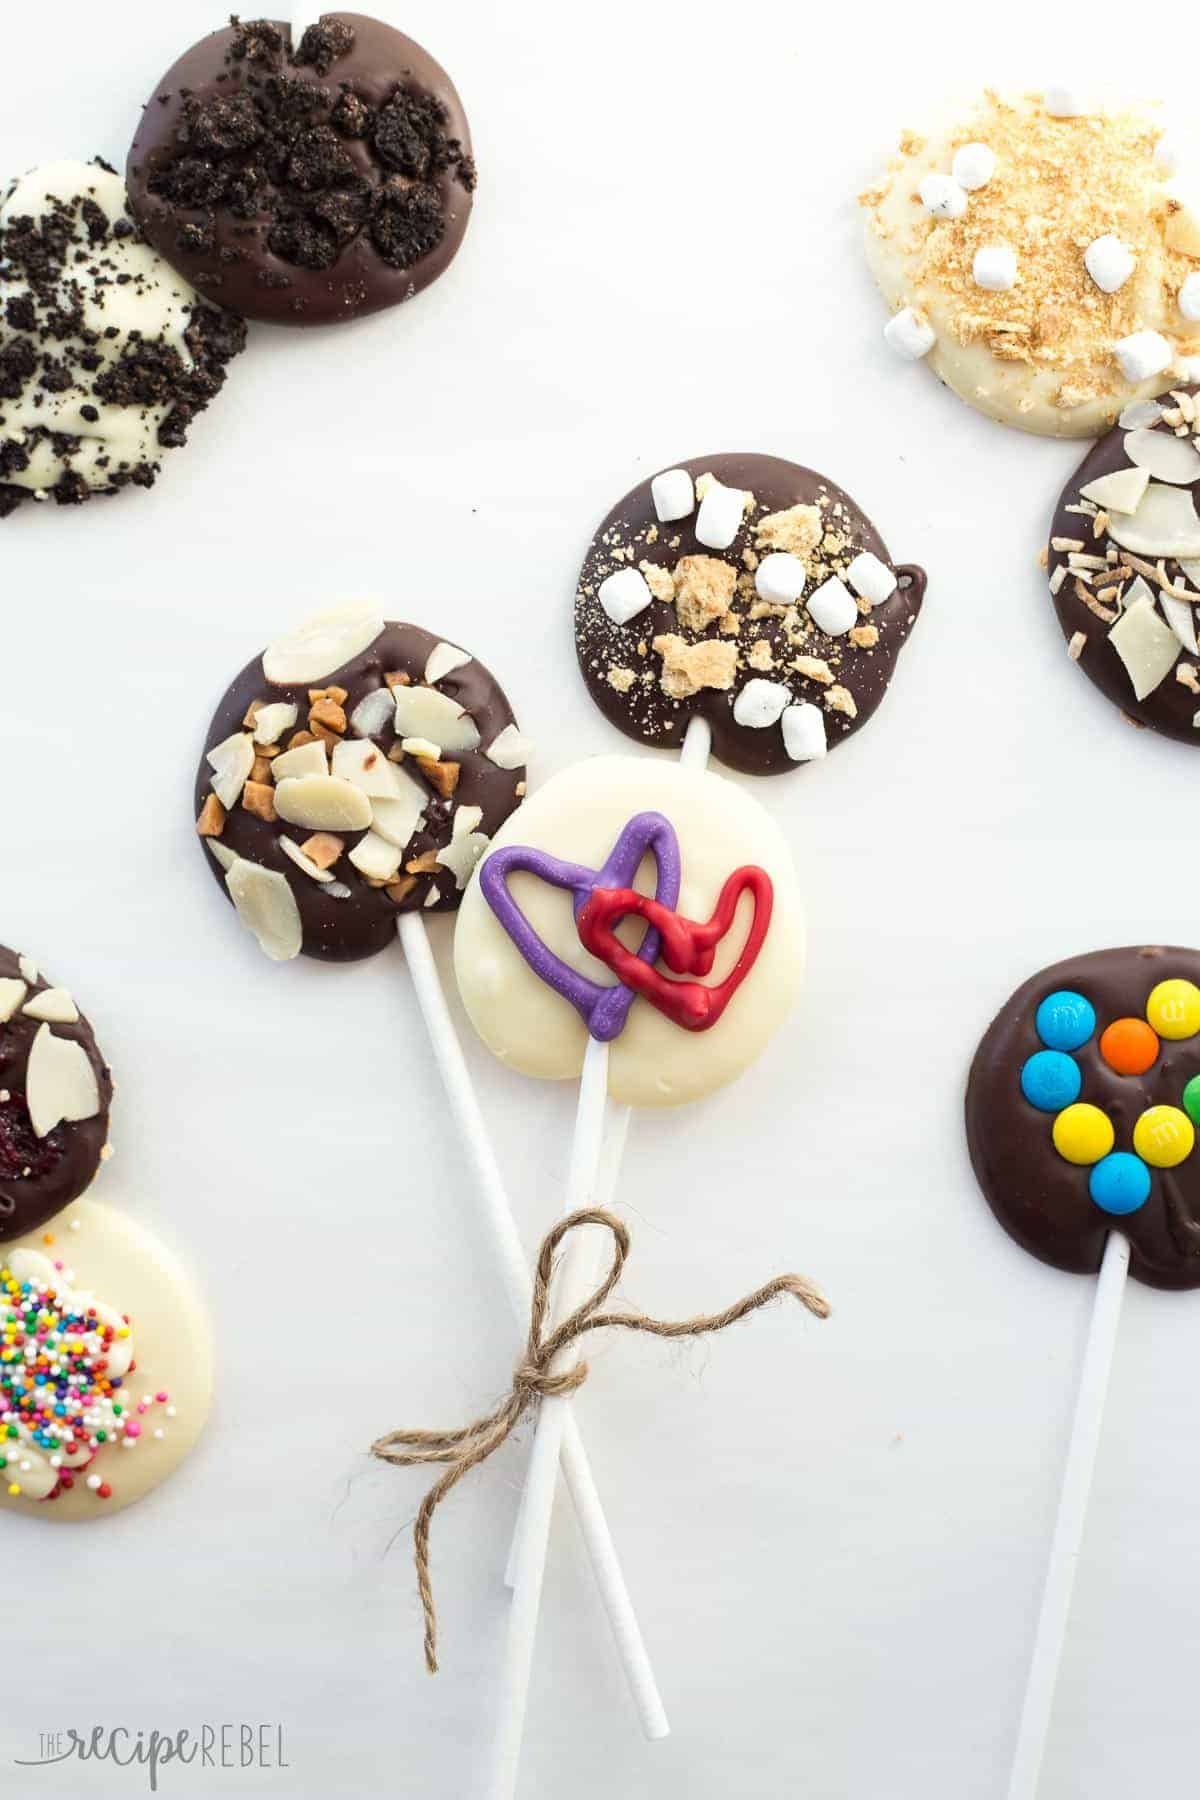 These Valentine's Day Chocolate Lollipops are an easy treat to make and attach to those valentine's -- and so easy to customize the design and toppings to your taste!